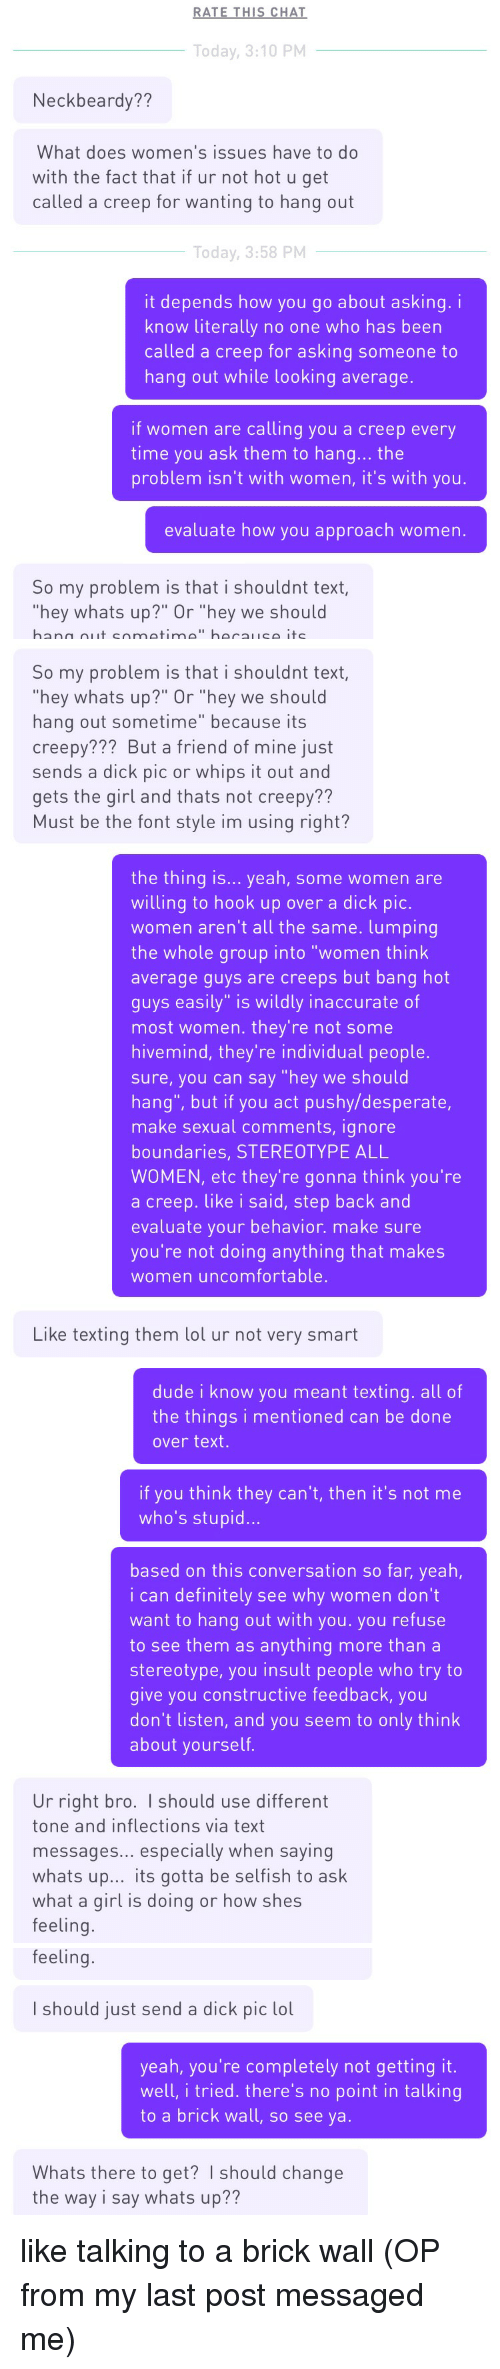 """Creepy, Definitely, and Desperate: RATE THIS CHAT  Today, 3:10 PM  Neckbeardy??  What does women's issues have to do  with the fact that if ur not hot u get  called a creep for wanting to hang out  Today, 3:58 PM  it depends how you go about asking. i  know literally no one who has beern  called a creep for asking someone to  hang out while looking average.  if women are calling you a creep every  time you ask them to hang... the  problem isn't with women, it's with you.  evaluate how you approach women.  So my problem is that i shouldnt text  hey whats up?"""" Or """"hey we should   So my problem is that i shouldnt text,  hey whats up?"""" Or """"hey we should  hang out sometime"""" because its  creepy??? But a friend of mine just  sends a dick pic or whips it out and  gets the girl and thats not creepy??  Must be the font style im using right?  the thing is... yeah, some women are  willing to hook up over a dick pic.  women aren't all the same. lumping  the whole group into """"women think  average guys are creeps but bang hot  guys easily"""" is wildly inaccurate of  most women. they're not some  hivemind, they're individual people.  sure, you can say """"hey we should  hang"""", but if you act pushy/desperate,  make sexual comments, ignore  boundaries, STEREOTYPE ALL  WOMEN, etc they're gonna think you're  a creep. like i said, step back and  evaluate your behavior. make sure  you're not doing anything that makes  women uncomfortable.   Like texting them lol ur not very smart  dude i know you meant texting. all of  the things i mentioned can be done  over text.  if you think they can't, then it's not me  who's stupid...  based on this conversation so far, yeah,  i can definitely see why women don't  want to hang out with you. you refuse  to see them as anything more than a  stereotype, you insult people who try to  give you constructive feedback, you  don't listen, and you seem to only think  about yourself.  Ur right bro. I should use different  tone and inflections via text  messages..."""